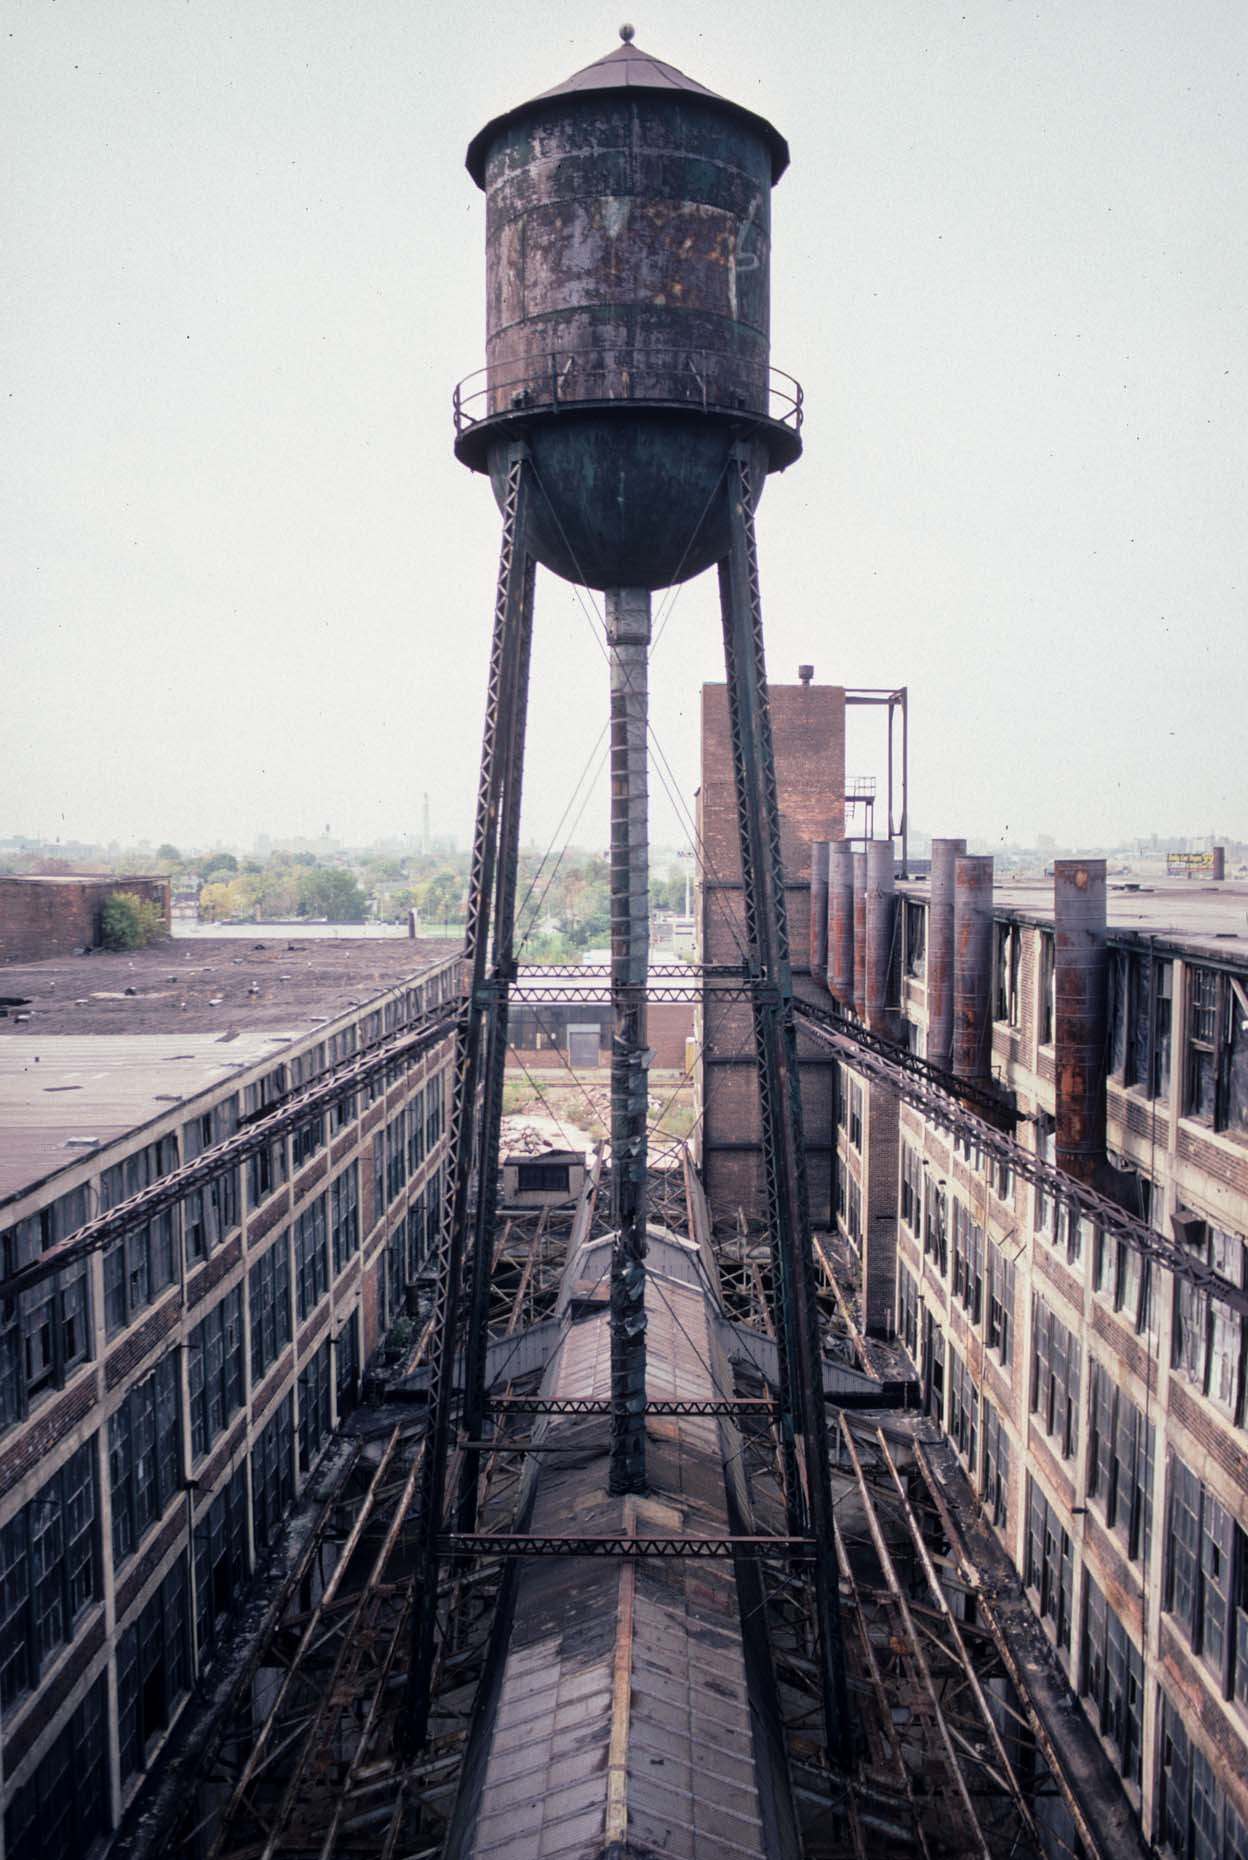 19_Water Tower, Former Packard Plant, E. Grand Blvd. at Concord, Detroit, 2000_.jpg